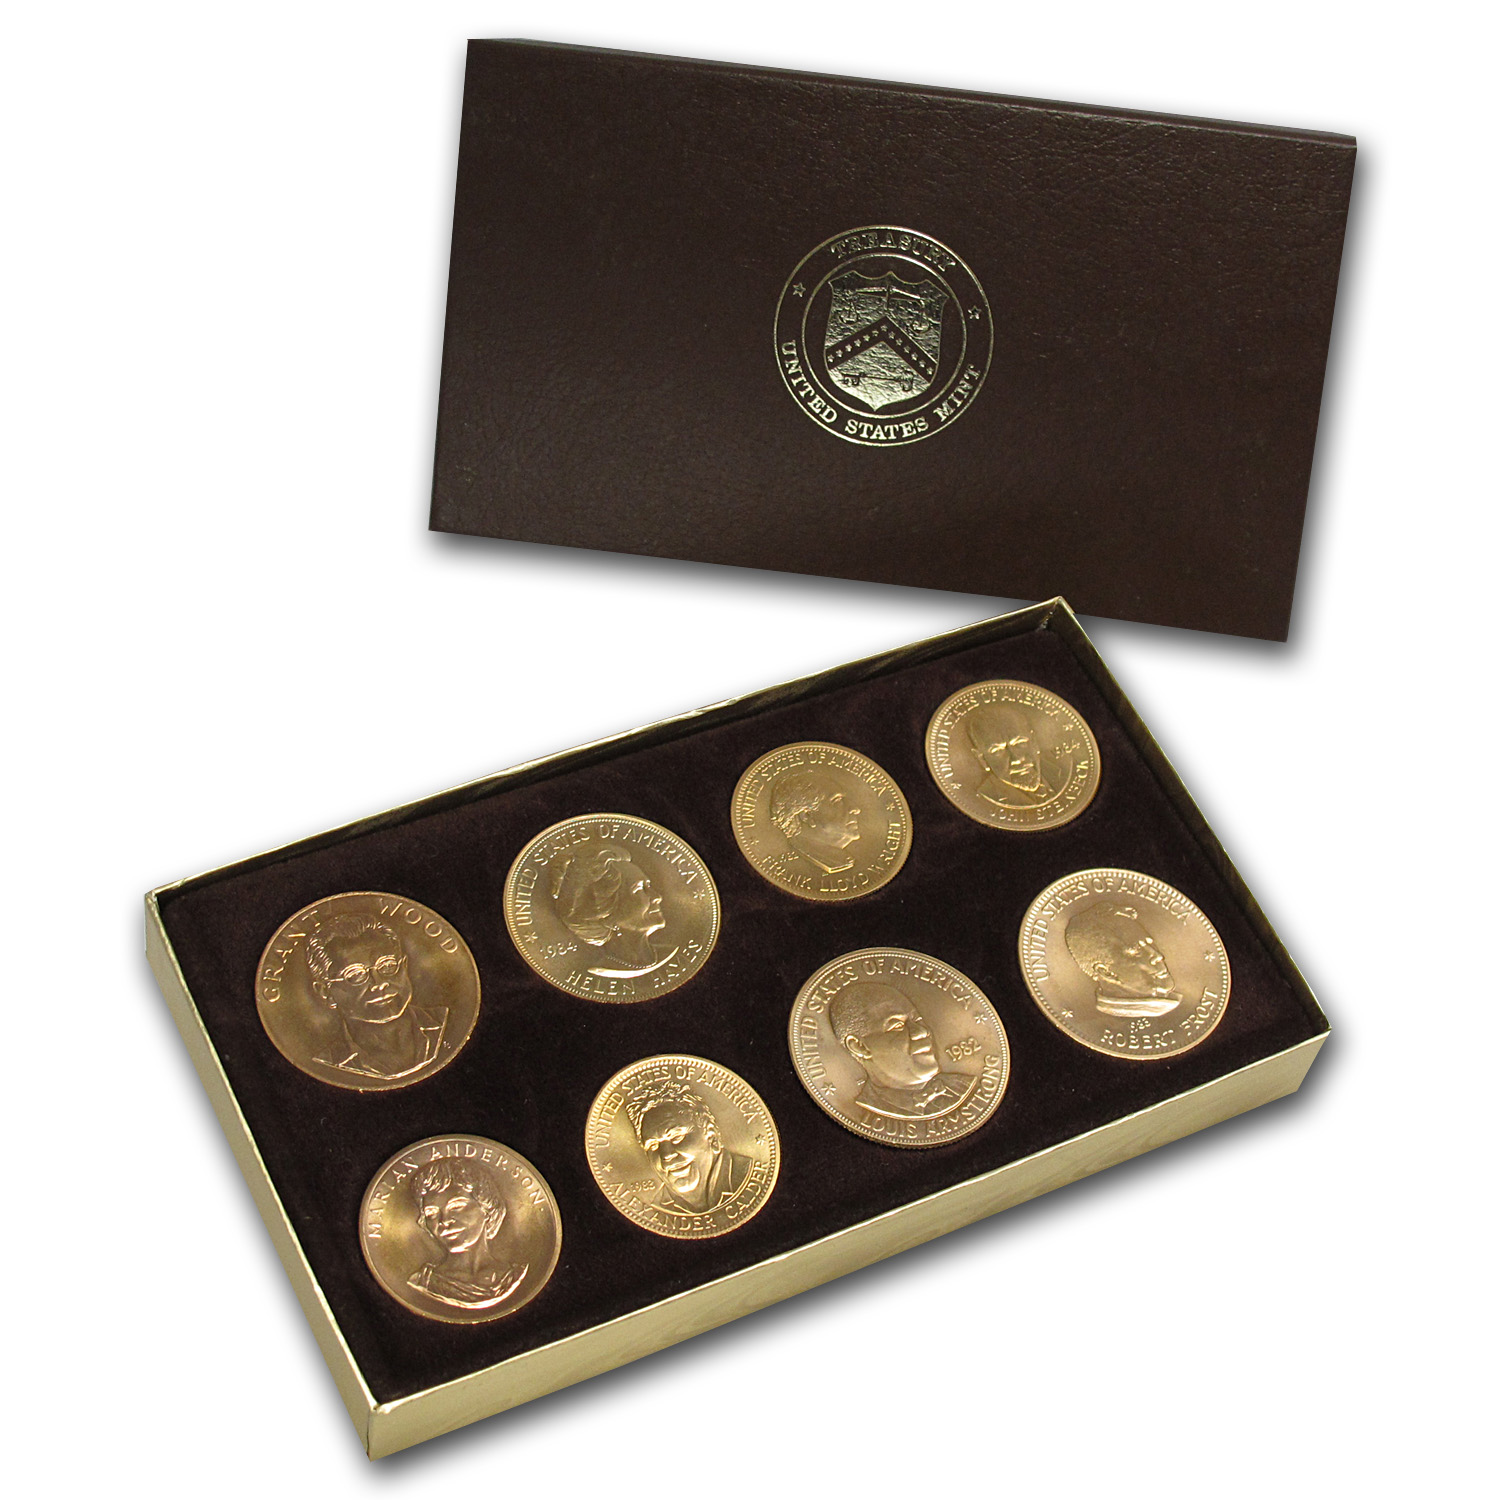 U.S. Mint 8-Coin 1/2 oz & 1 oz Gold Commem Arts Medallion Set